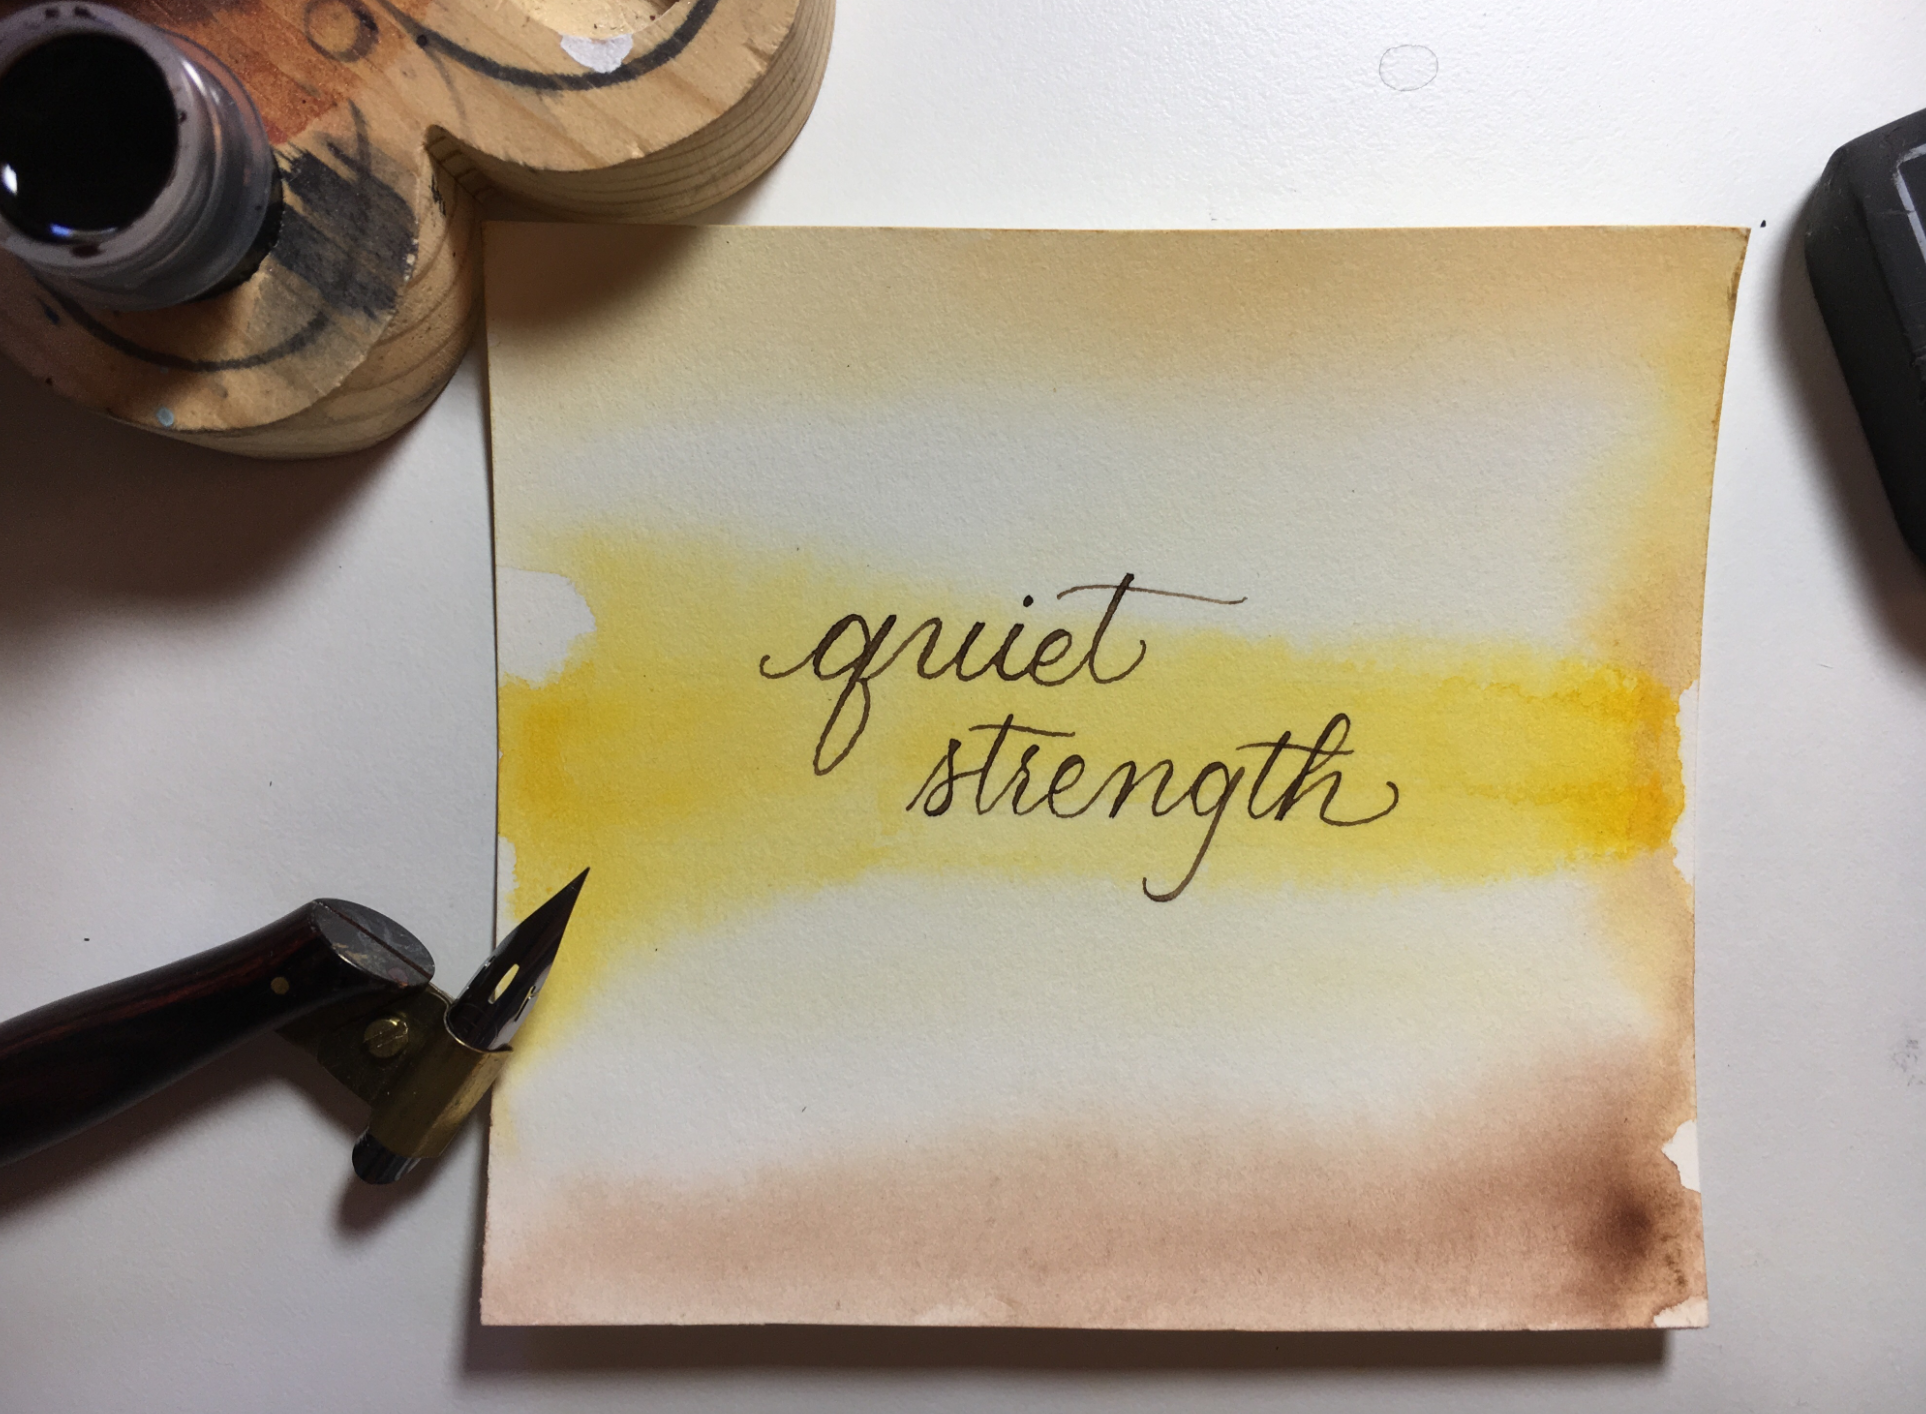 10 Questions with Left-handed Calligraphy Artist Shannon DeBord